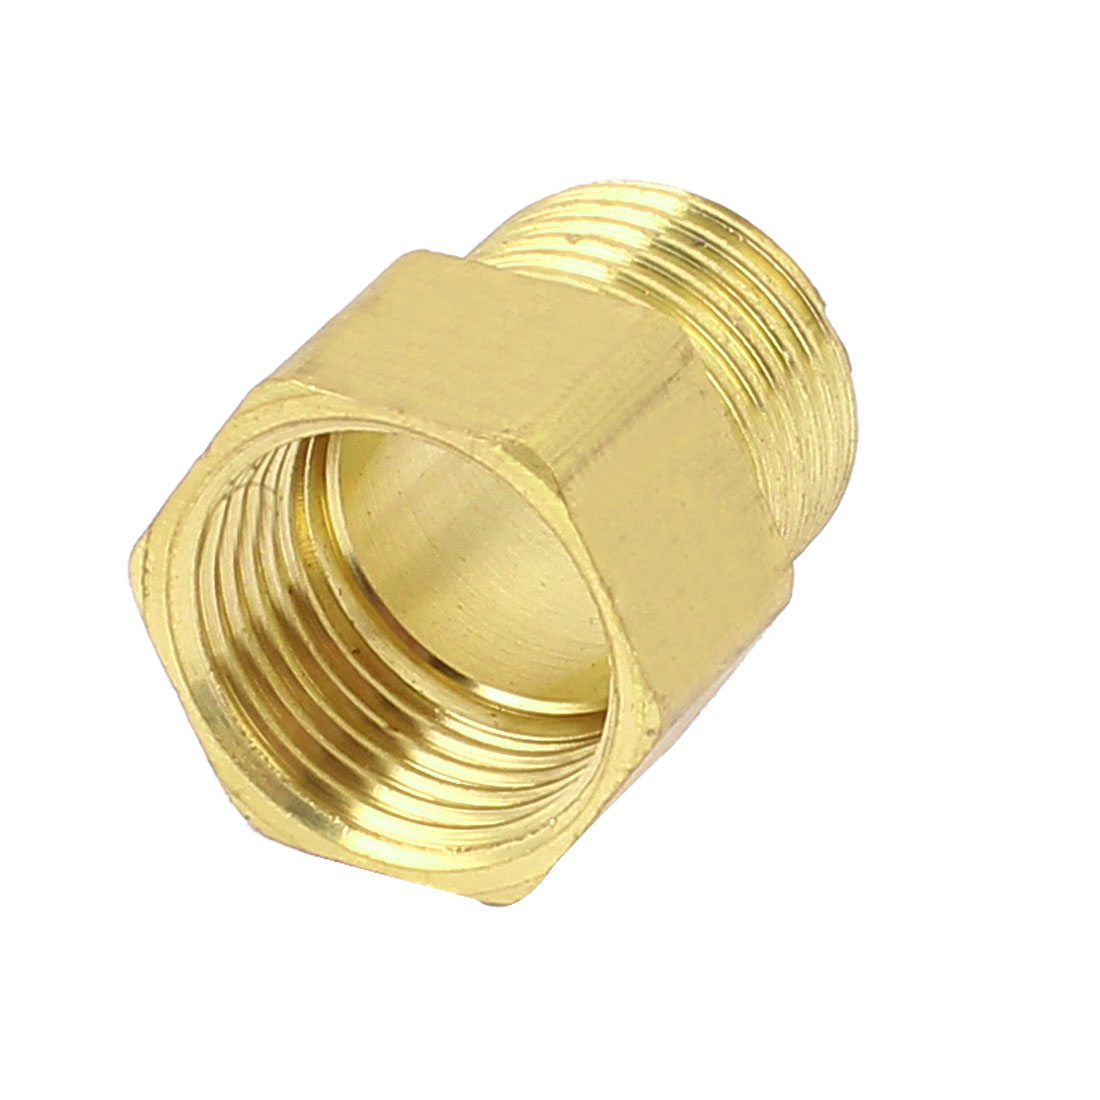 Hydraulic 1/2BSP Male to 1/2BSP Female Brass Hex Head Busing Connector